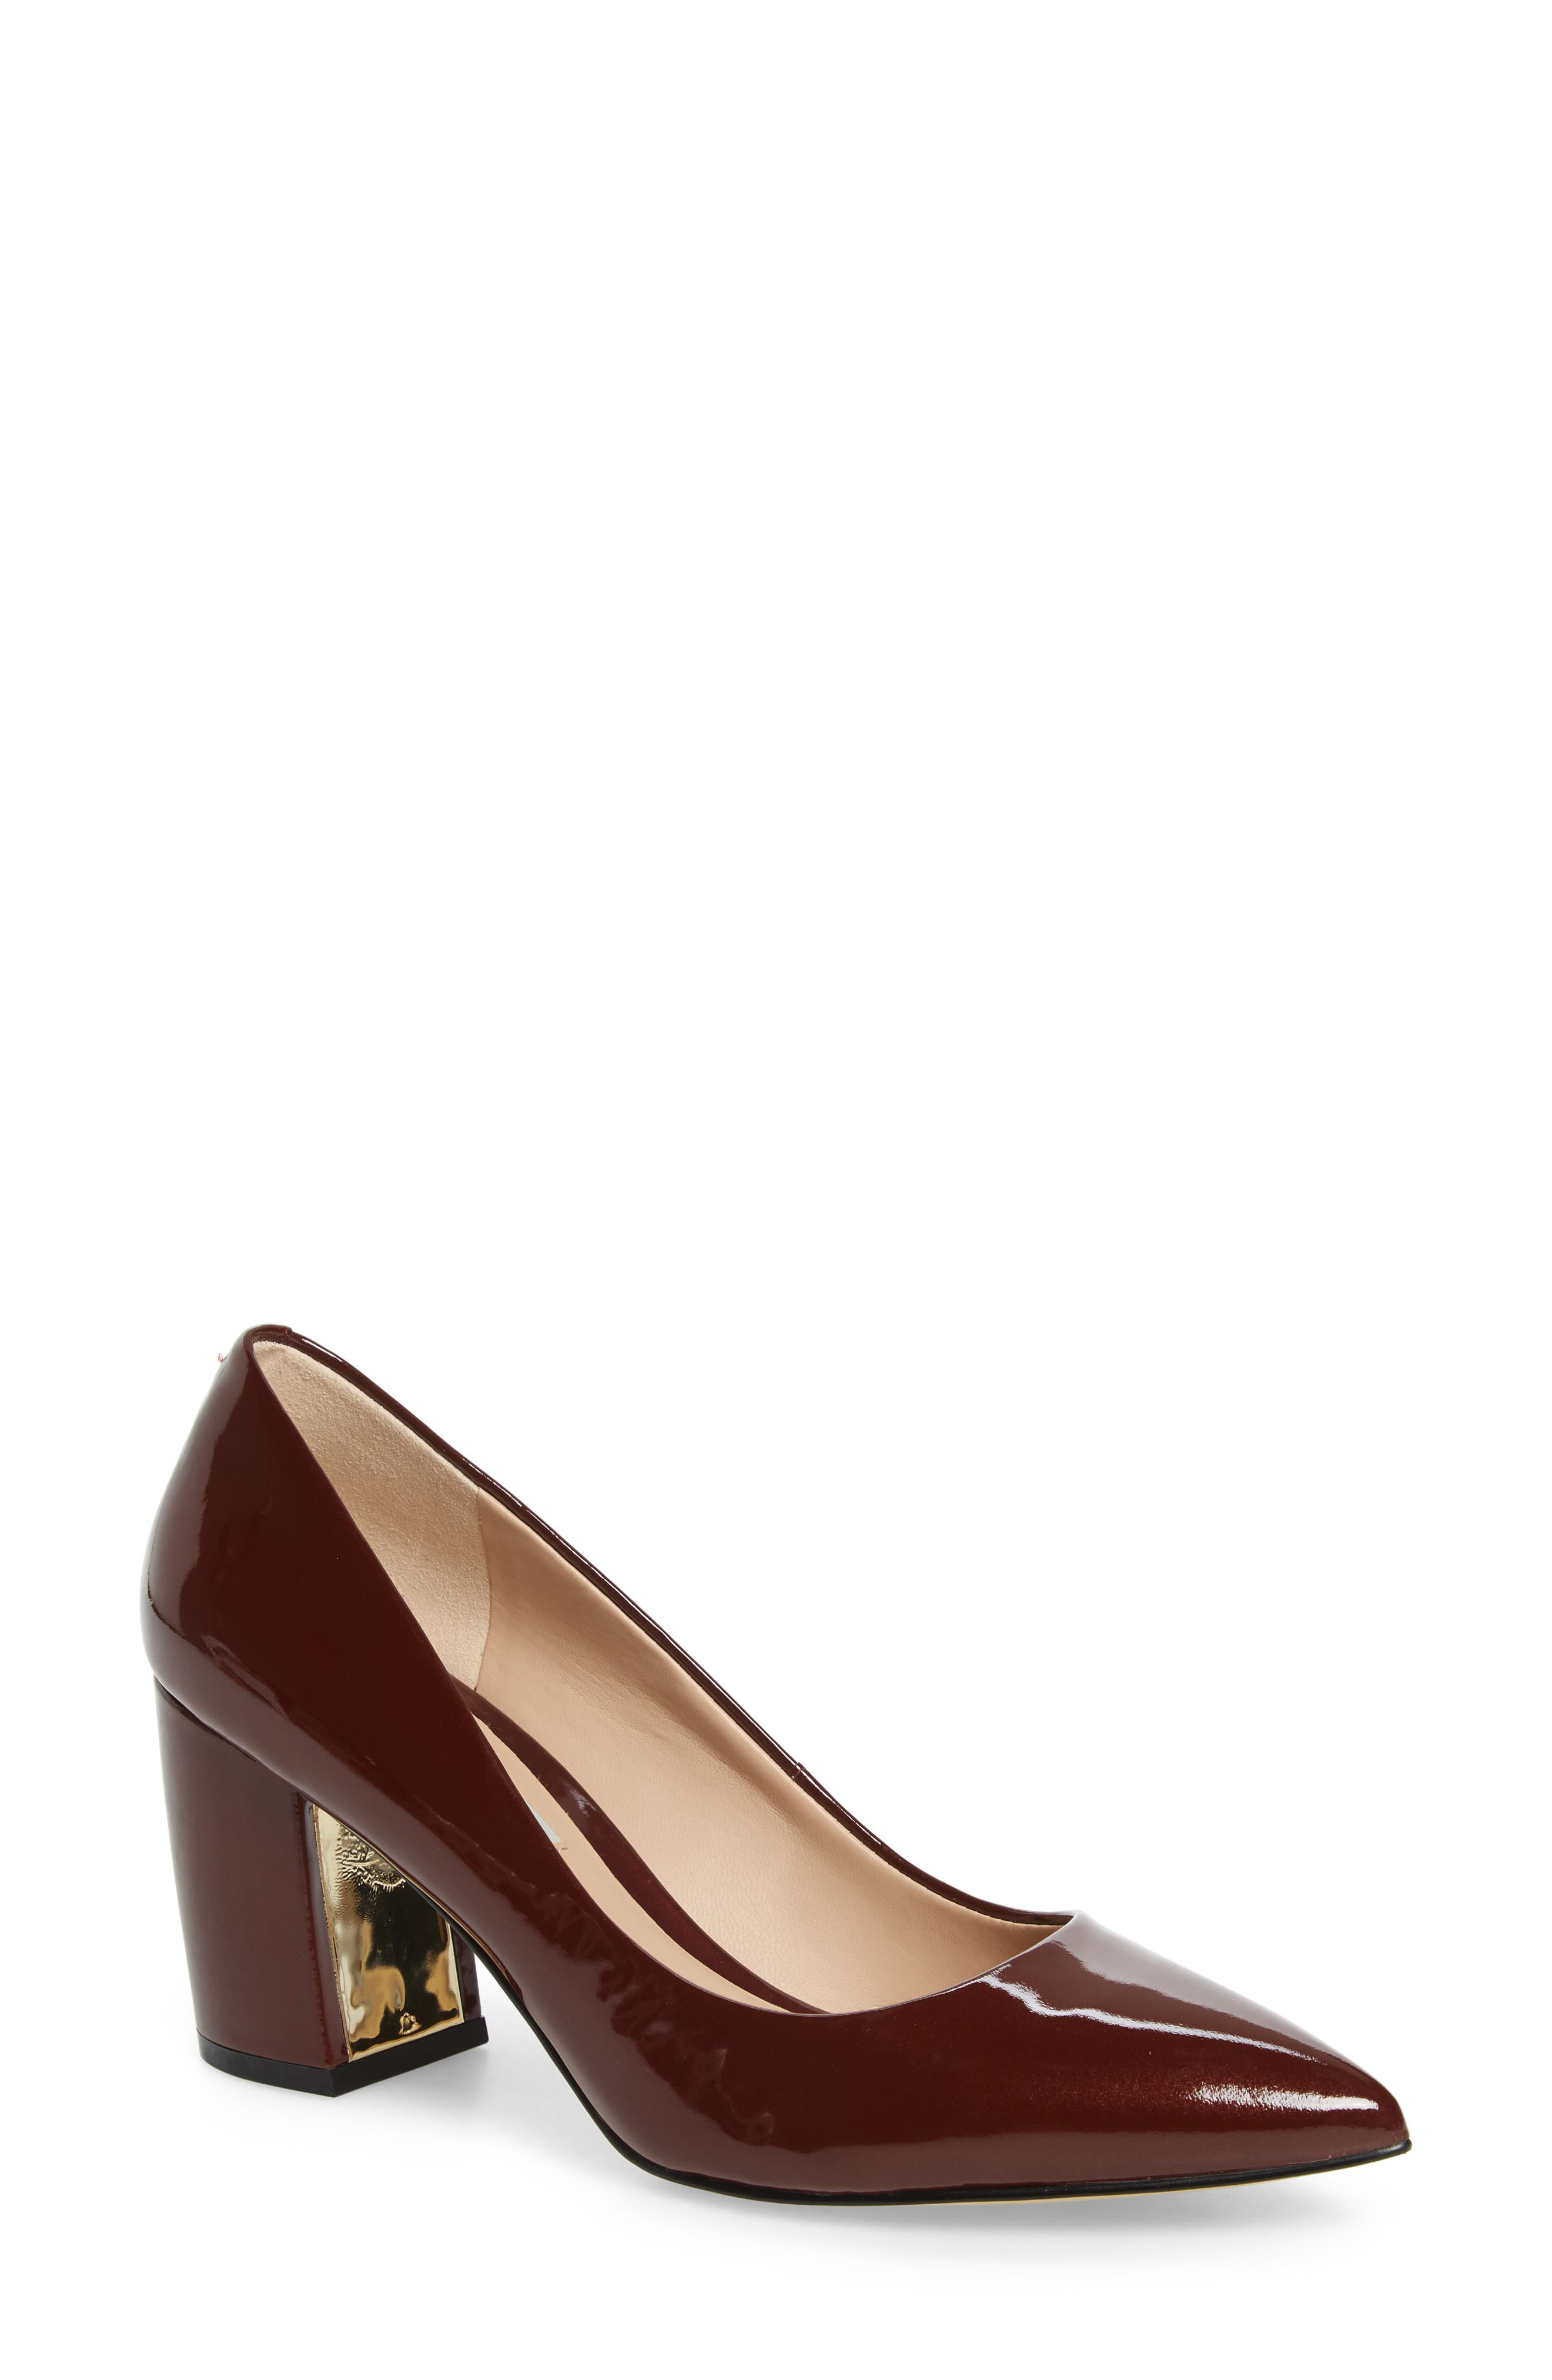 Addie Pump,                             Main thumbnail 1, color,                             BURGUNDY PATENT LEATHER